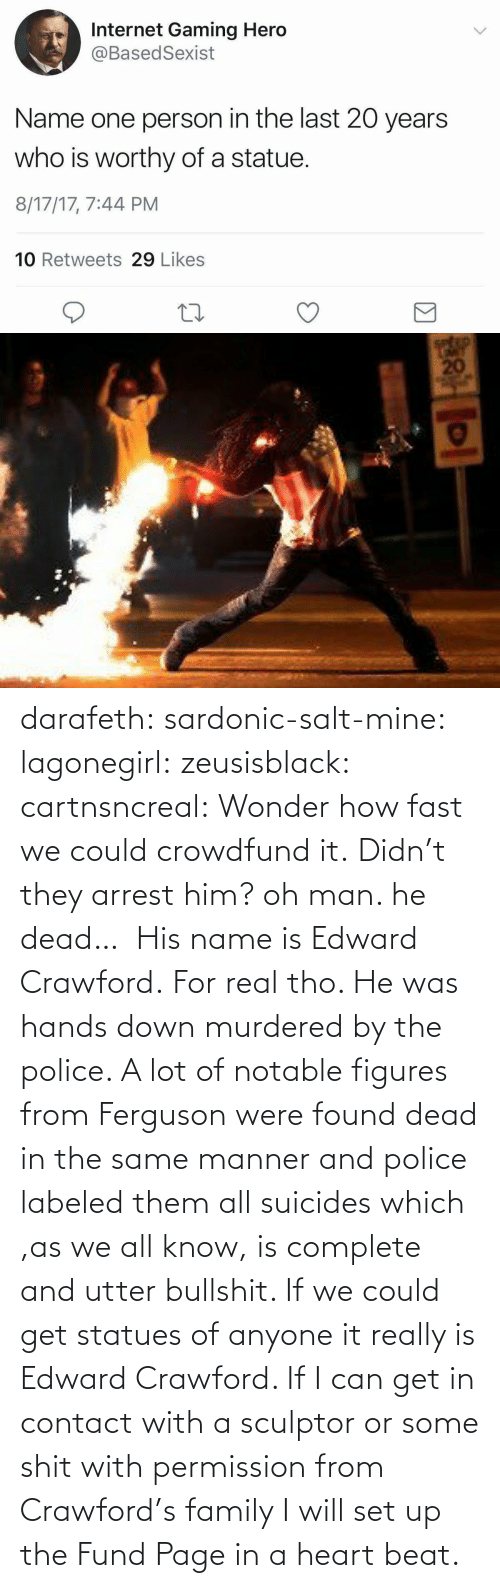 In A: darafeth: sardonic-salt-mine:  lagonegirl:  zeusisblack:  cartnsncreal:   Wonder how fast we could crowdfund it.    Didn't they arrest him?  oh man. he dead…   His name is Edward Crawford.   For real tho. He was hands down murdered by the police. A lot of notable figures from Ferguson were found dead in the same manner and police labeled them all suicides which ,as we all know, is complete and utter bullshit.  If we could get statues of anyone it really is Edward Crawford. If I can get in contact with a sculptor or some shit with permission from Crawford's family I will set up the Fund Page in a heart beat.